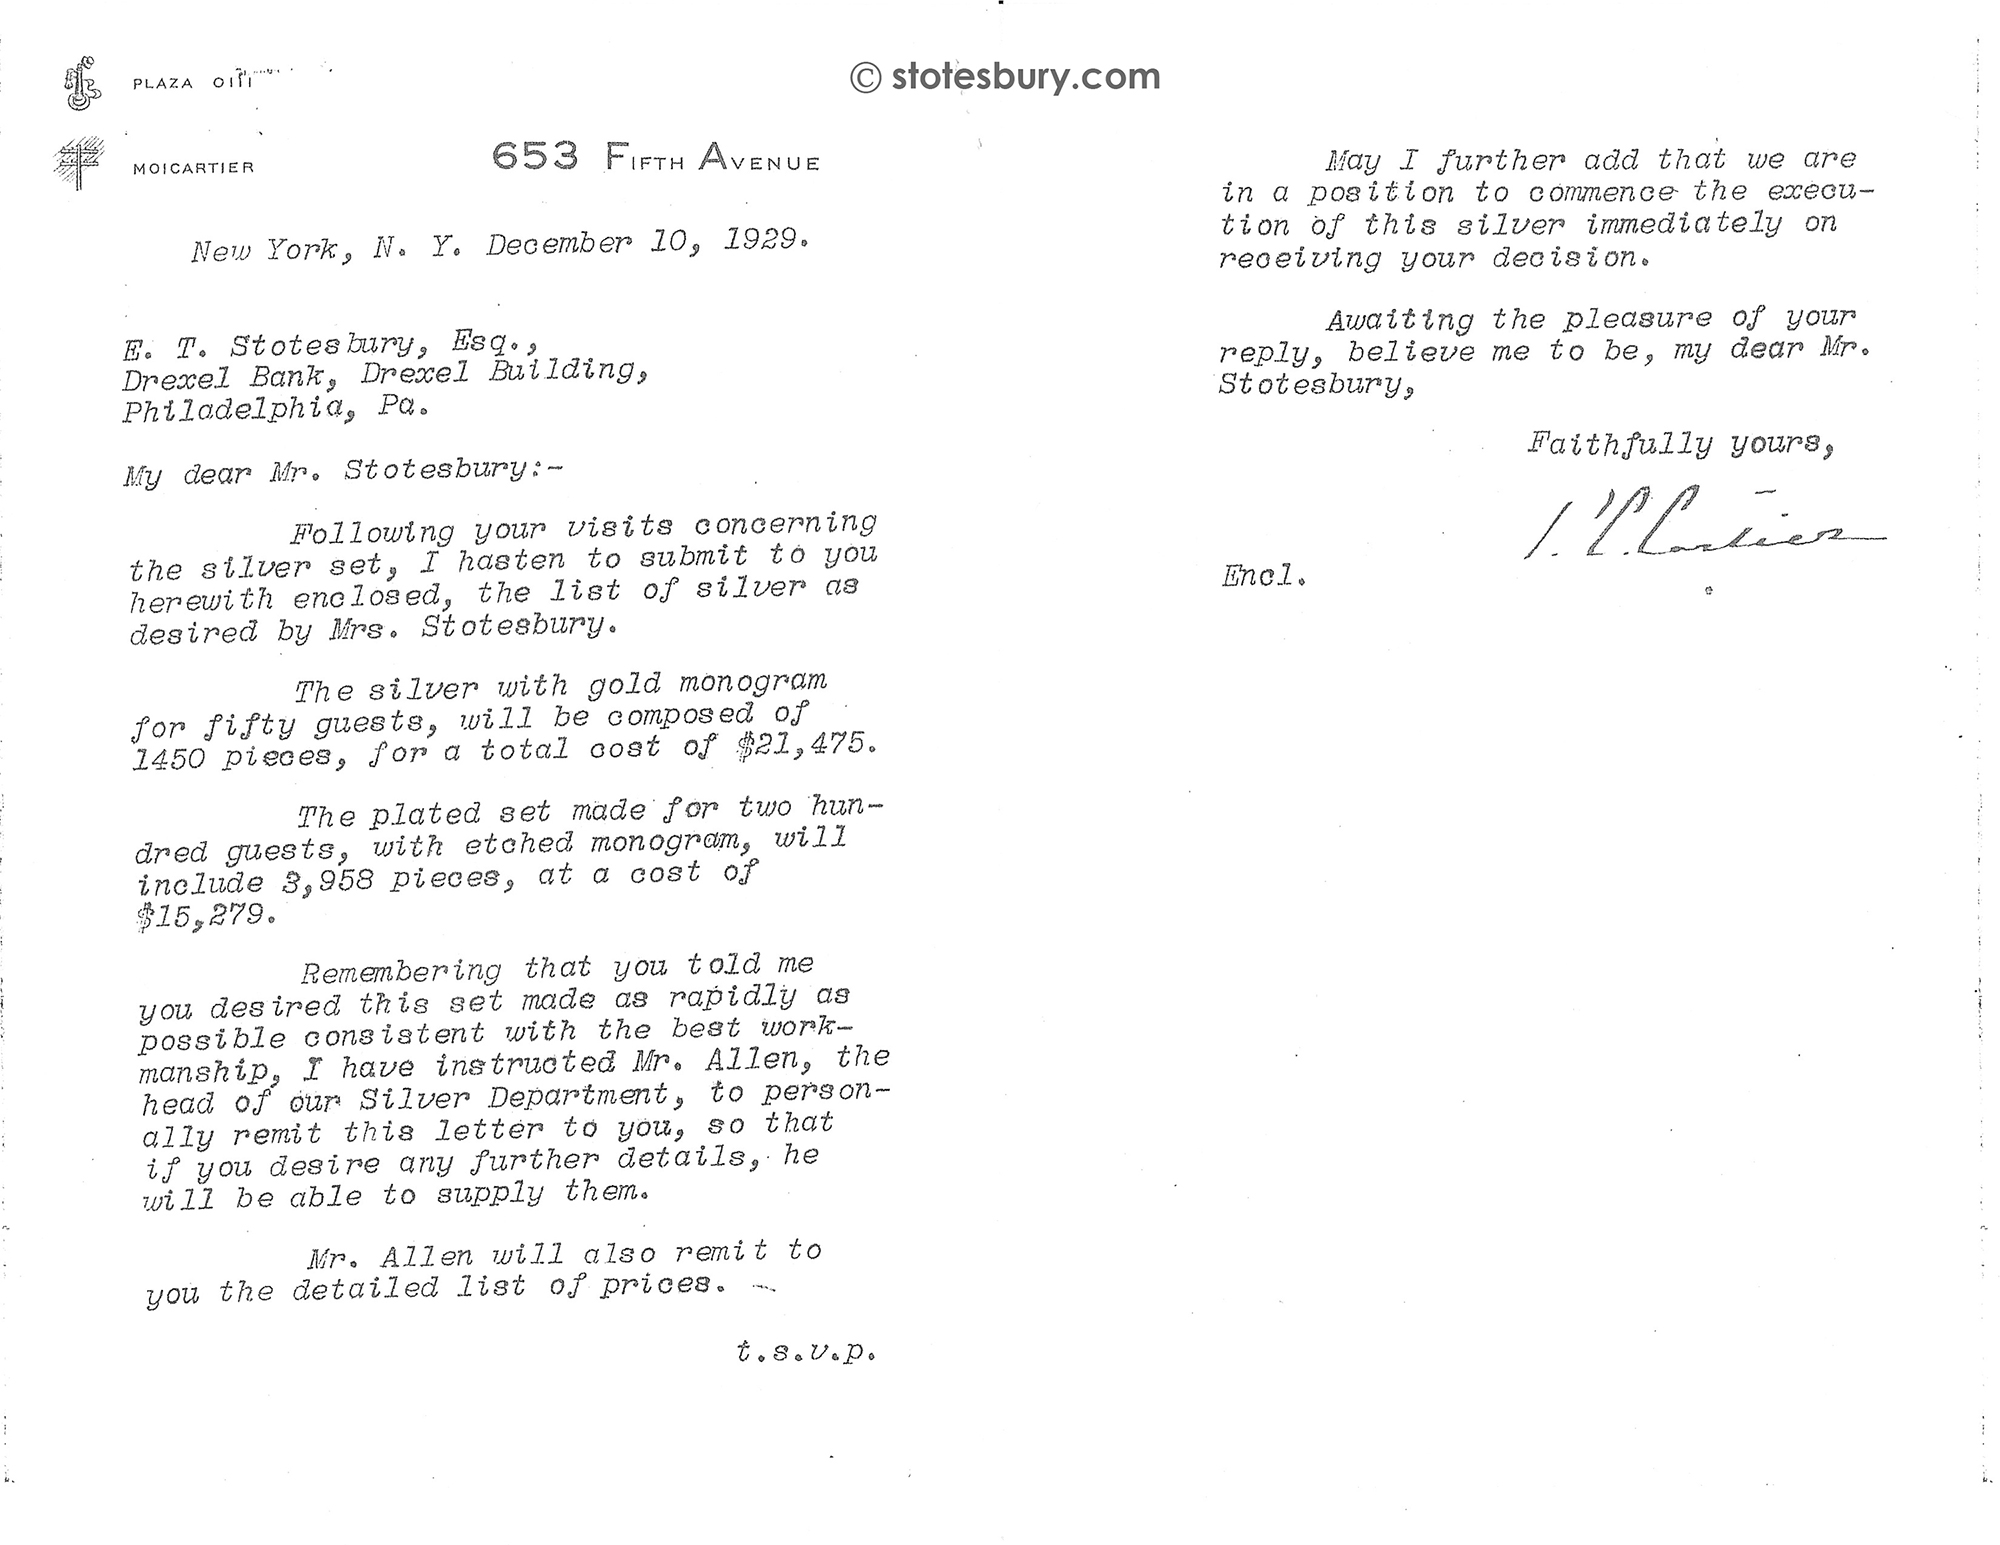 December 1929 Letter from Pierre Cartier